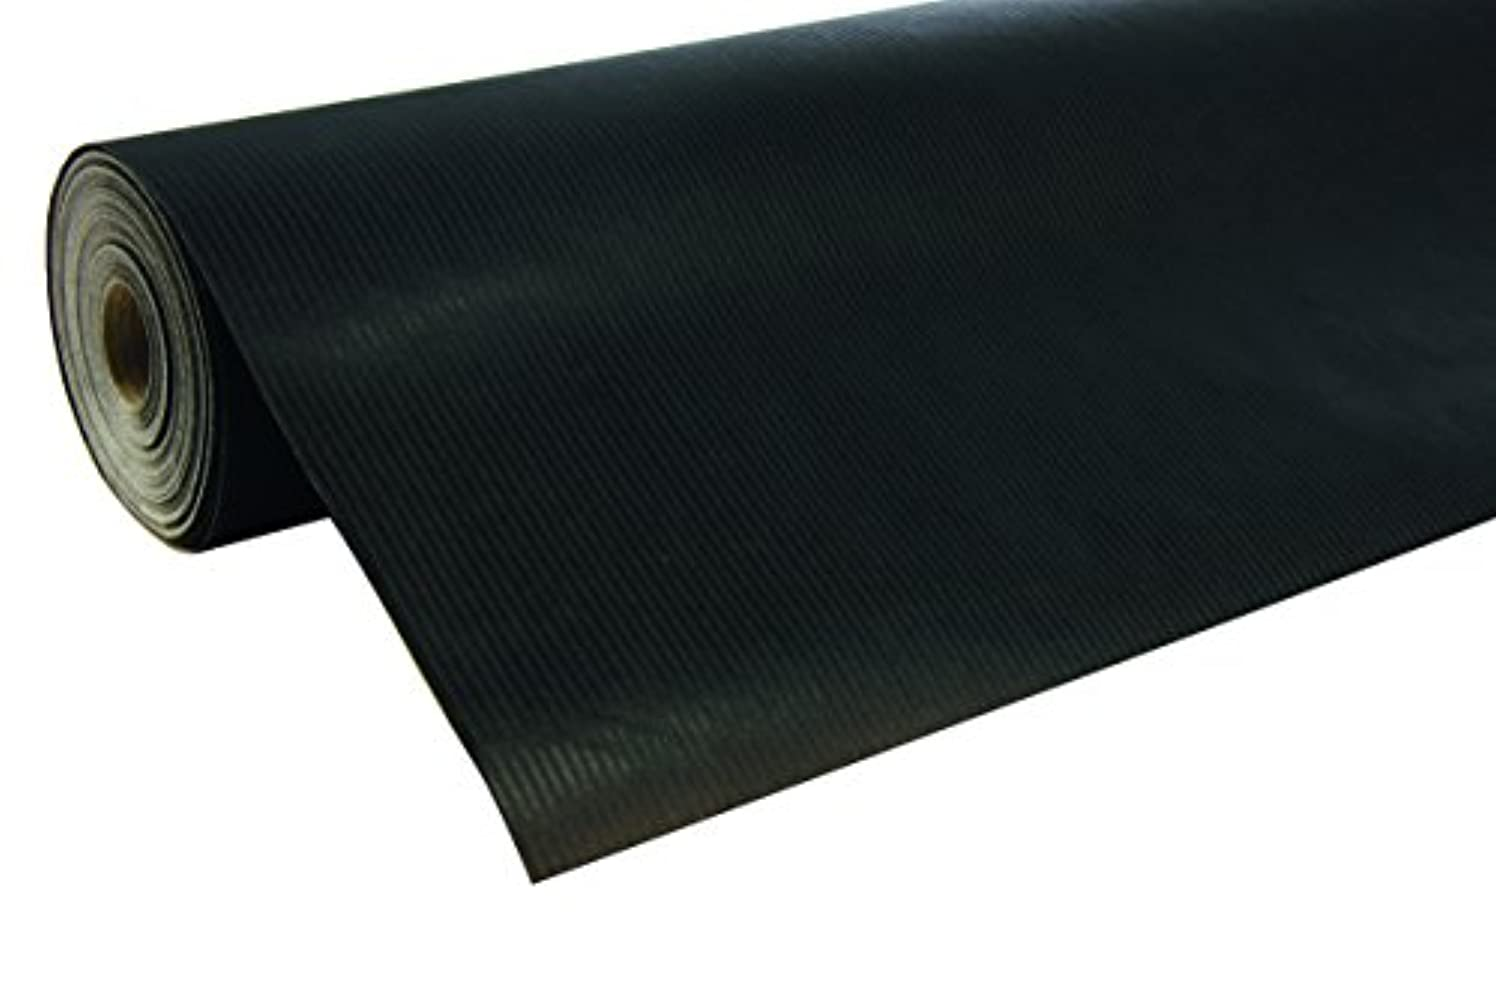 Clairefontaine 50x0.7m Unicolor Paper Roll - Black